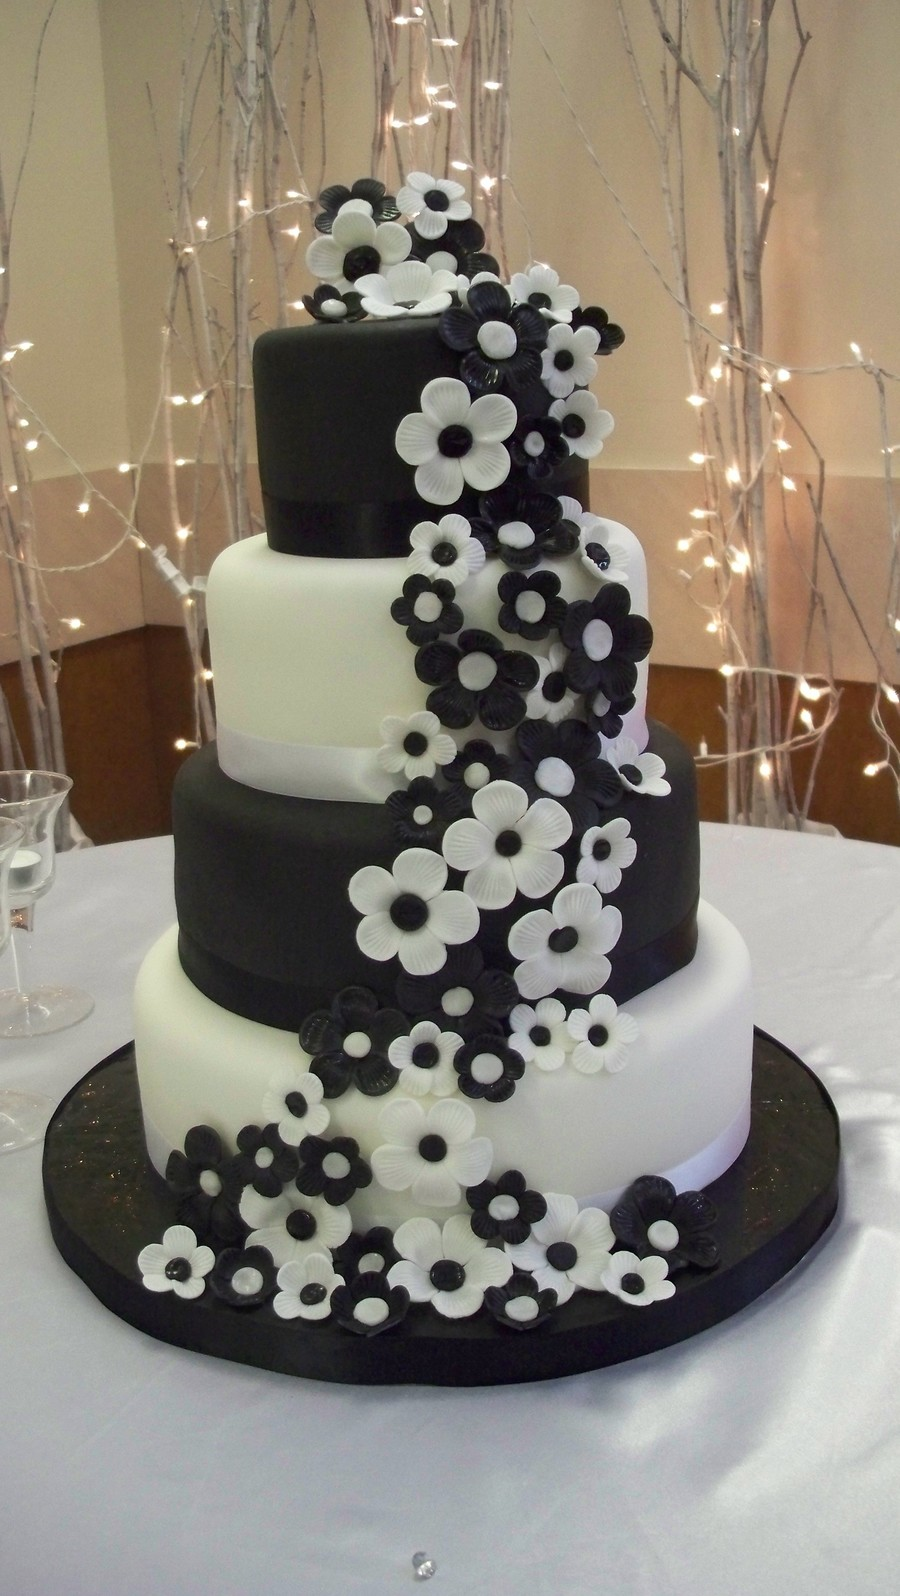 black wedding cakes with flowers black and white wedding cake cakecentral 11887